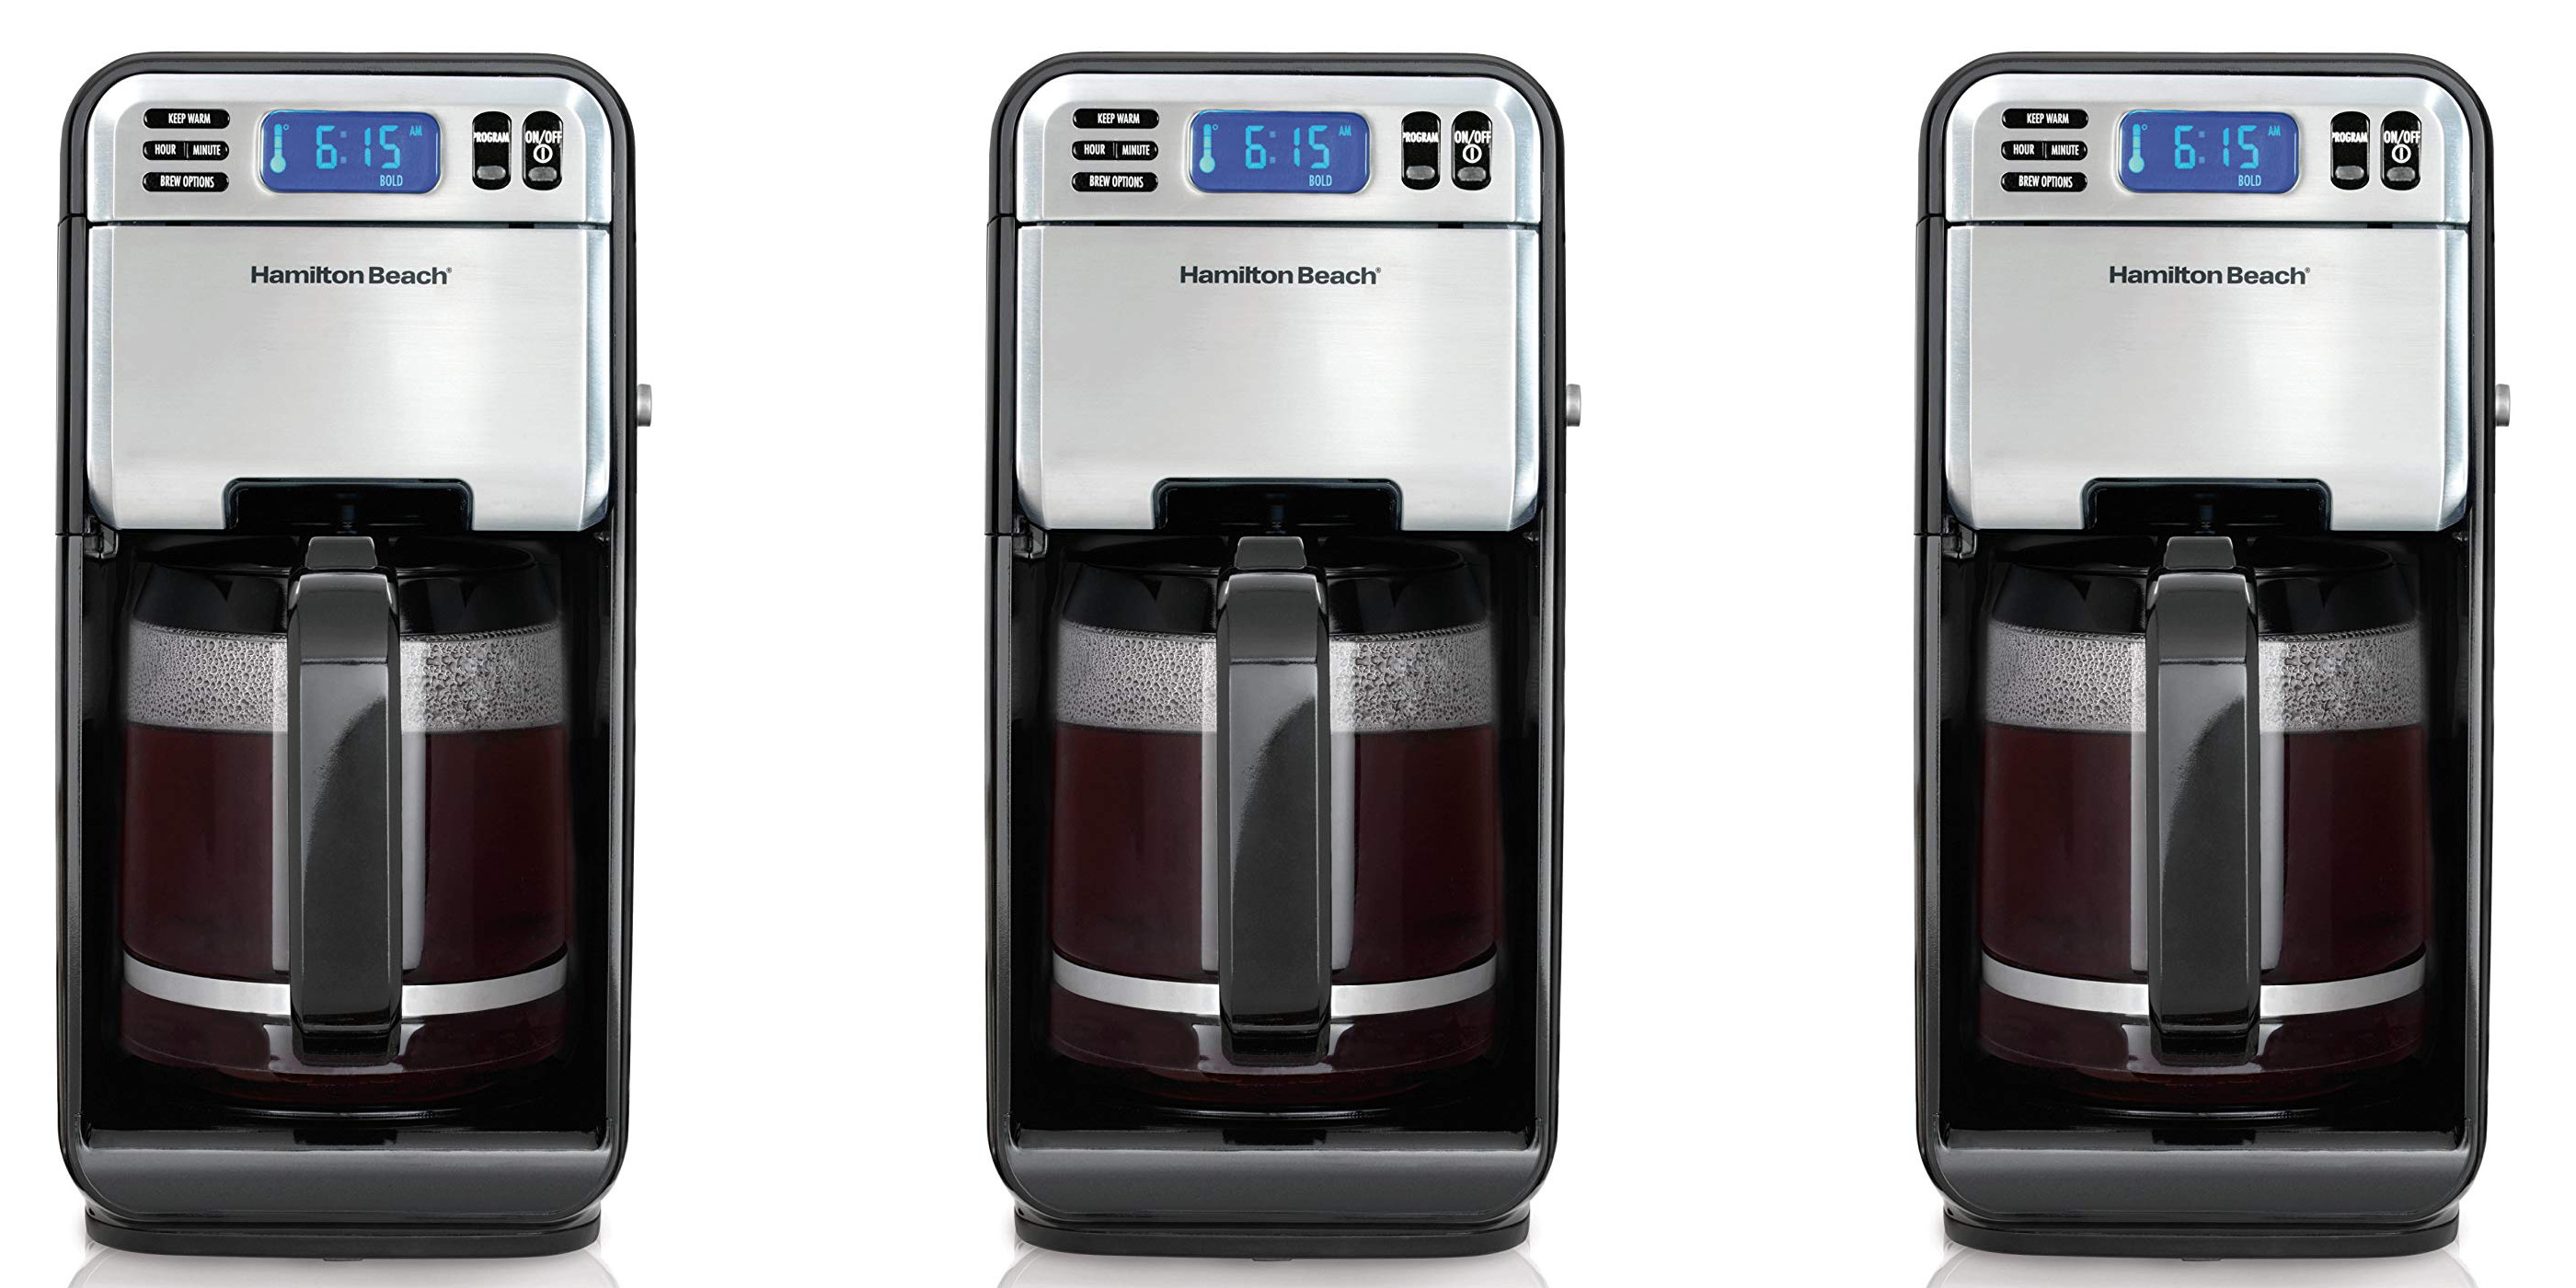 Hamilton Beach's 12-Cup Coffee Maker w/ LCD display is down to $28 shipped (Reg. $40+)